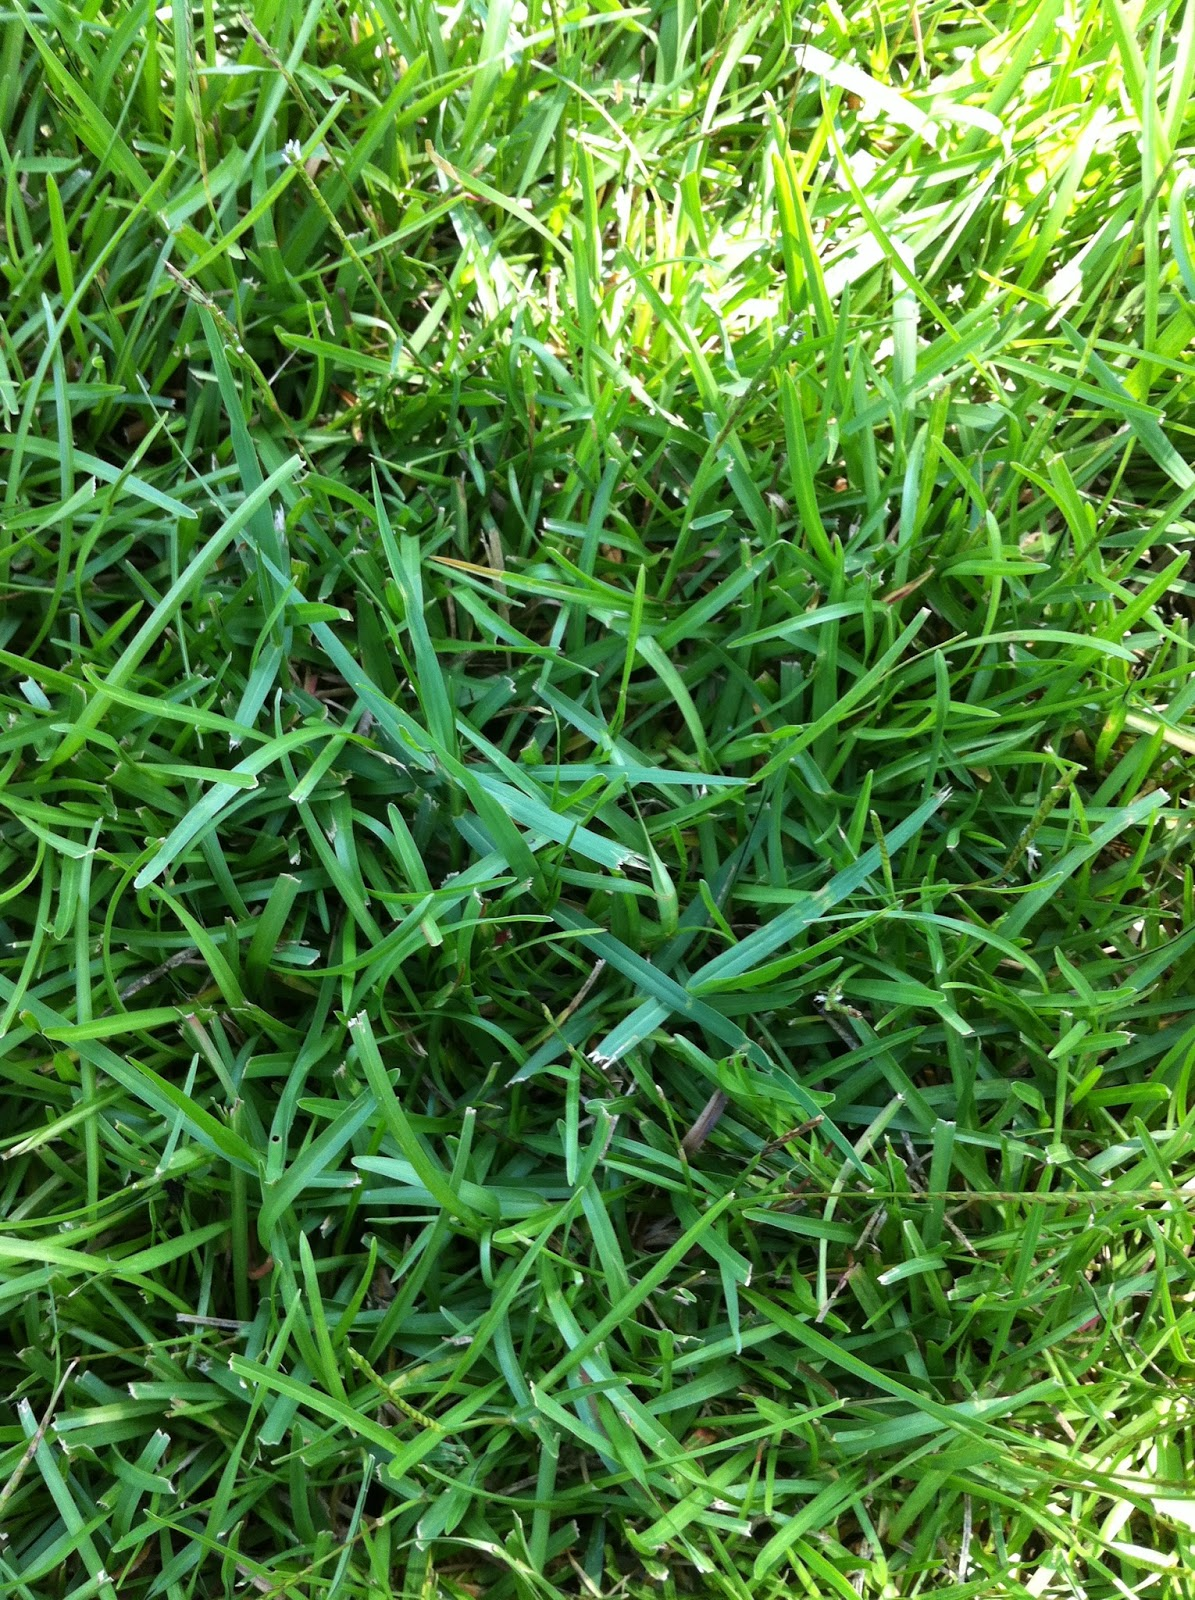 Centipede Grass Seed Www Imgkid Com The Image Kid Has It